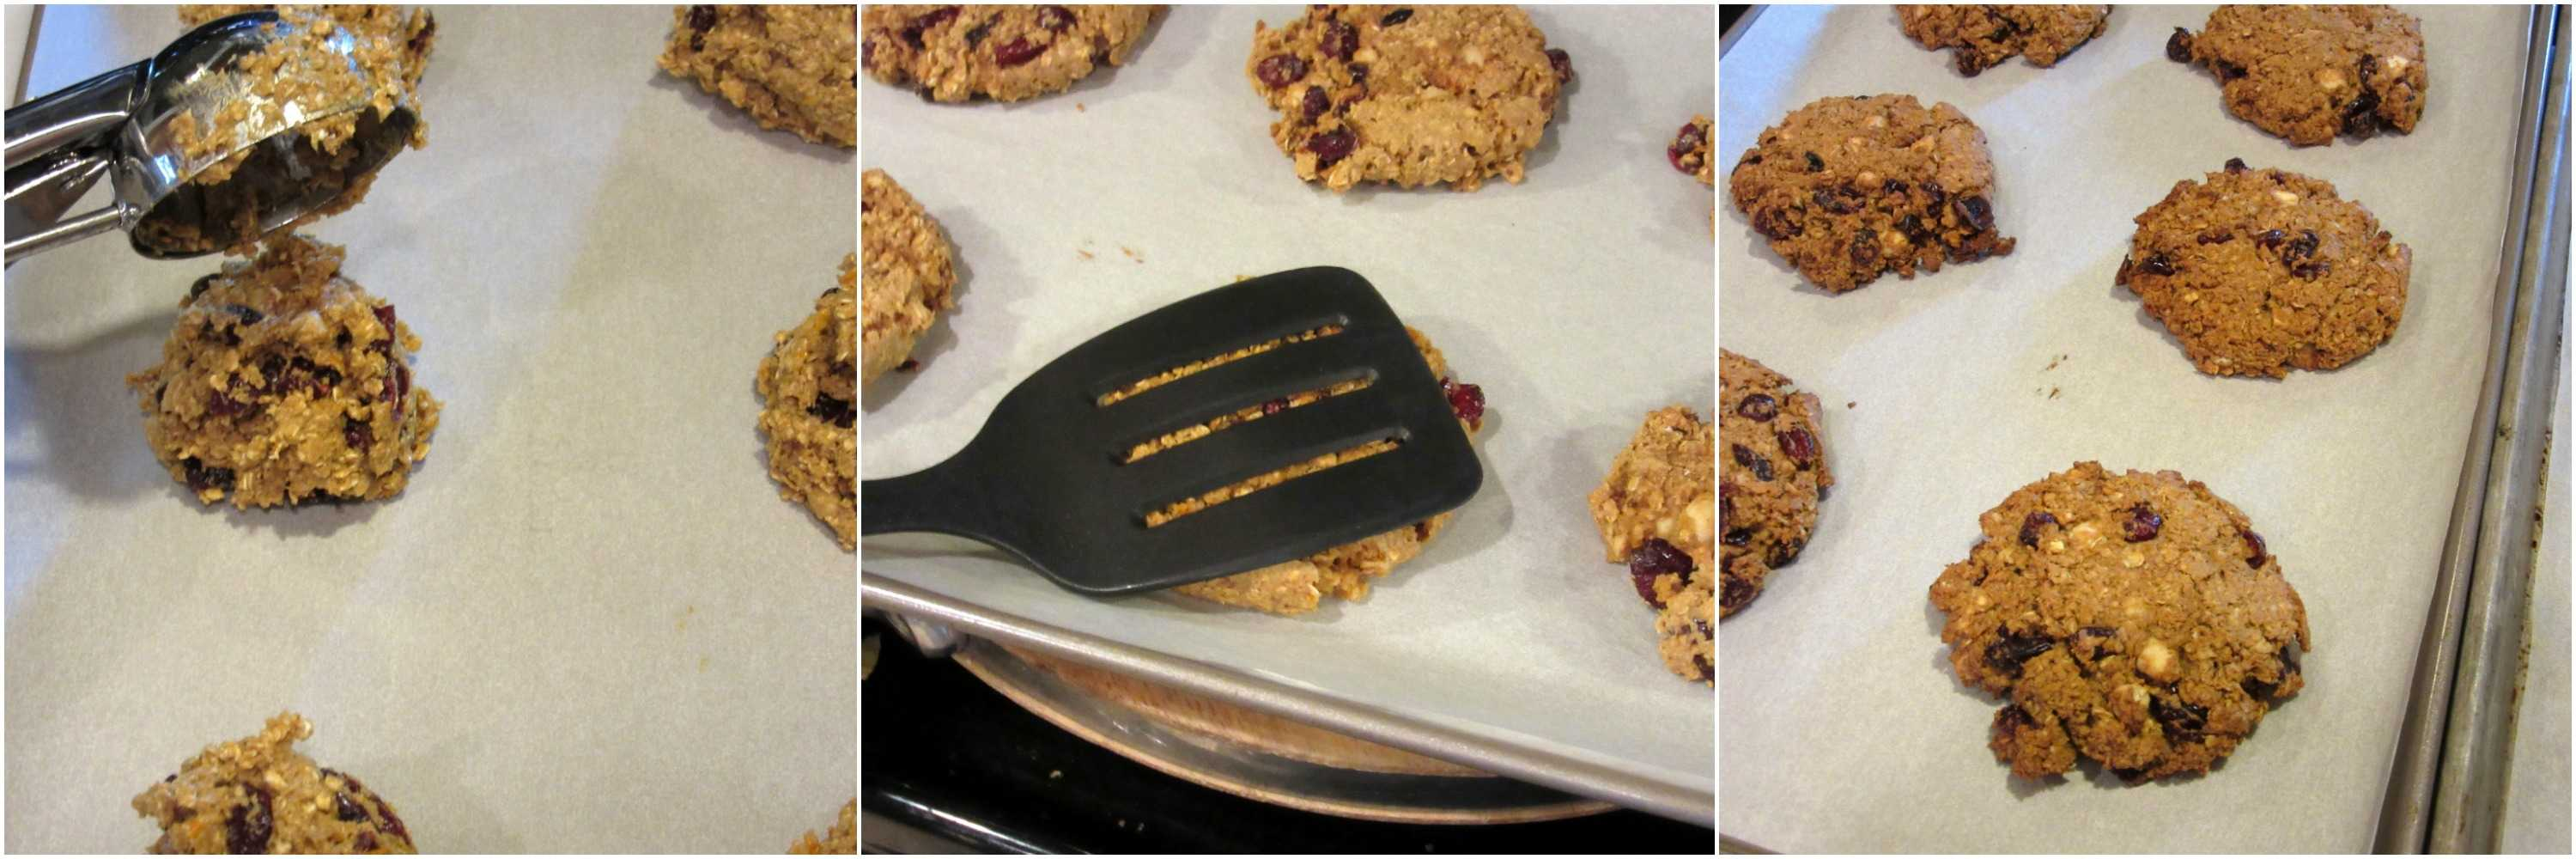 Ultimate Soft And Chewy Gluten Free Orange Cranberry Cookies Baking